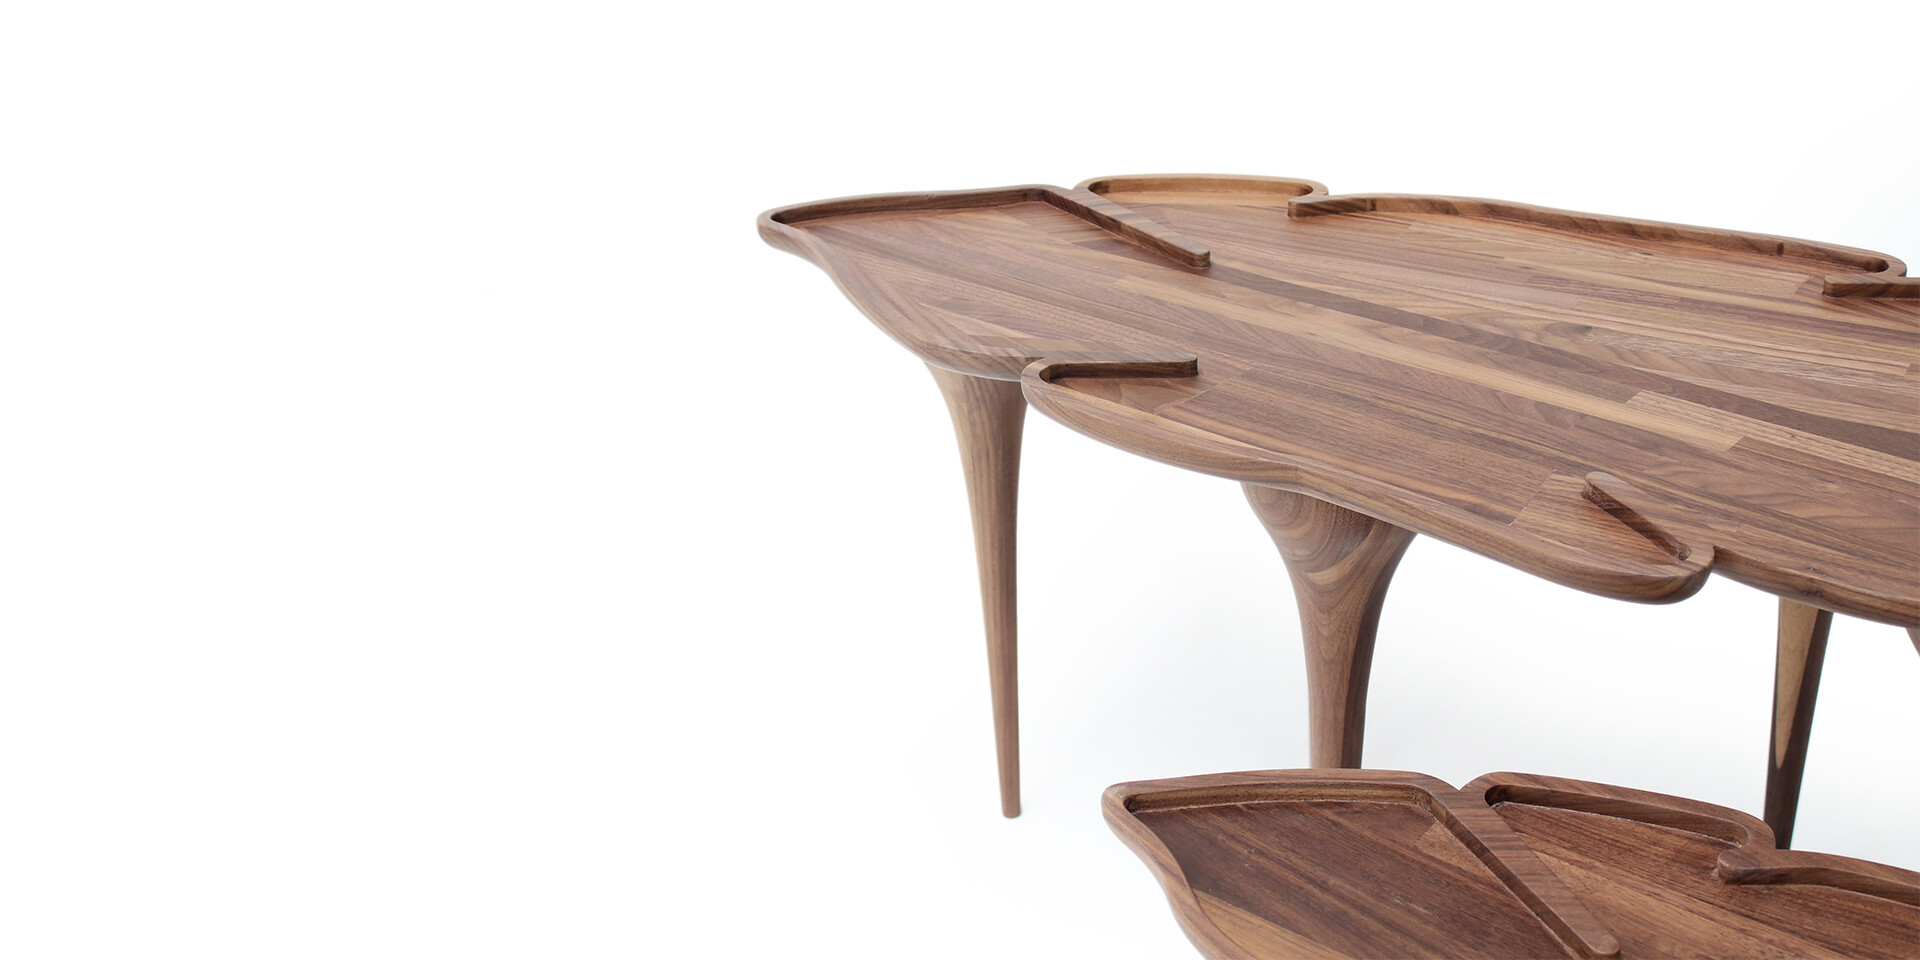 KOROWAI COFFEE TABLE detail top side view ALMA de LUCE